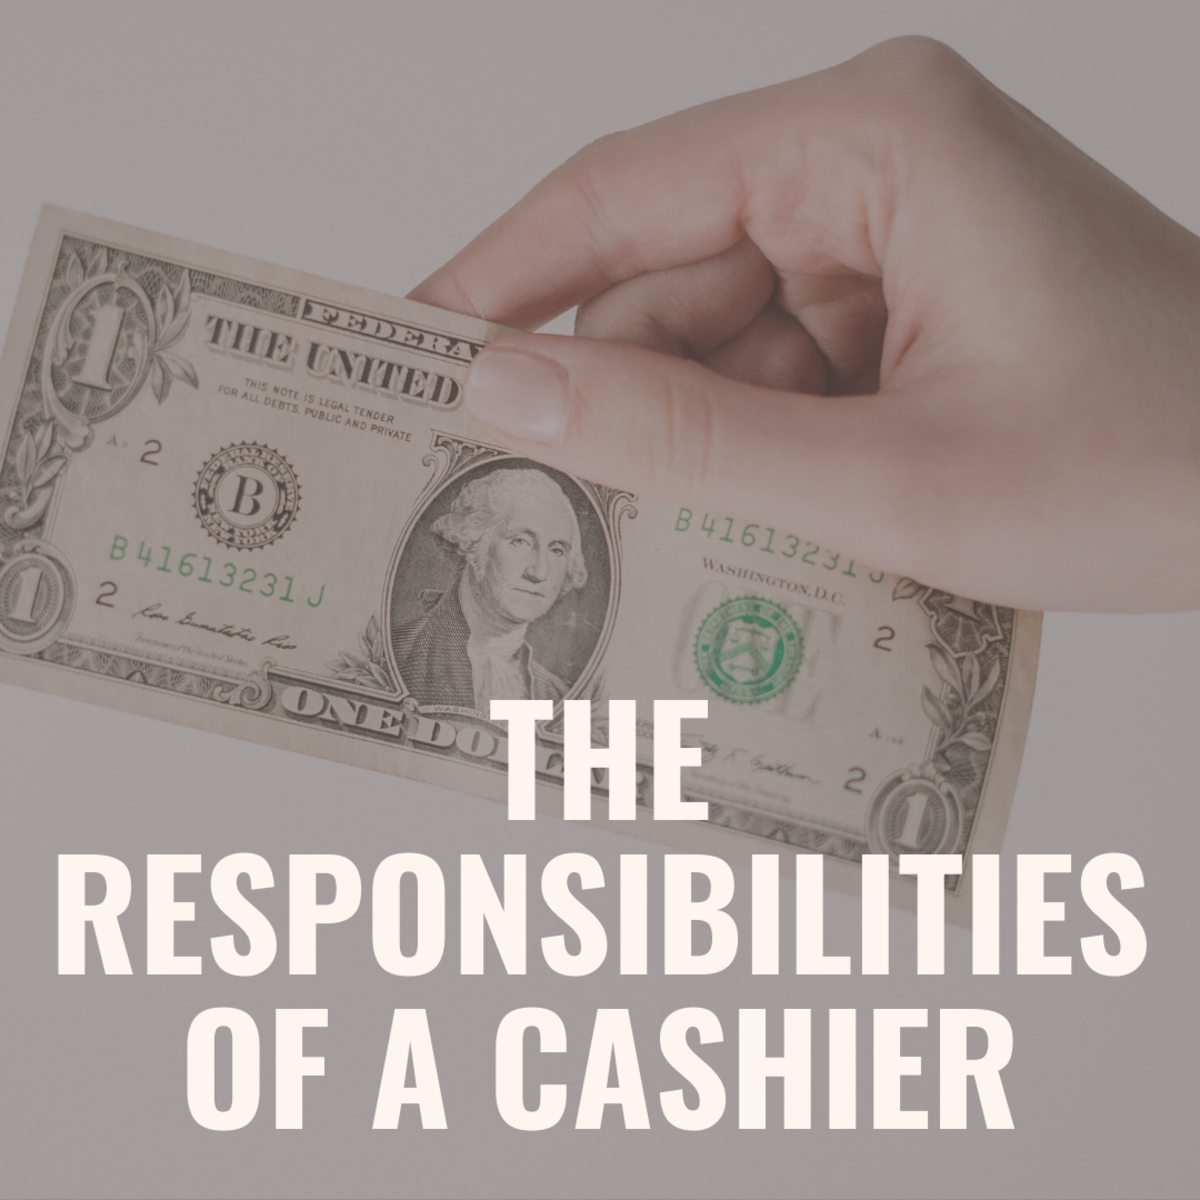 What Are the Responsibilities of a Cashier?